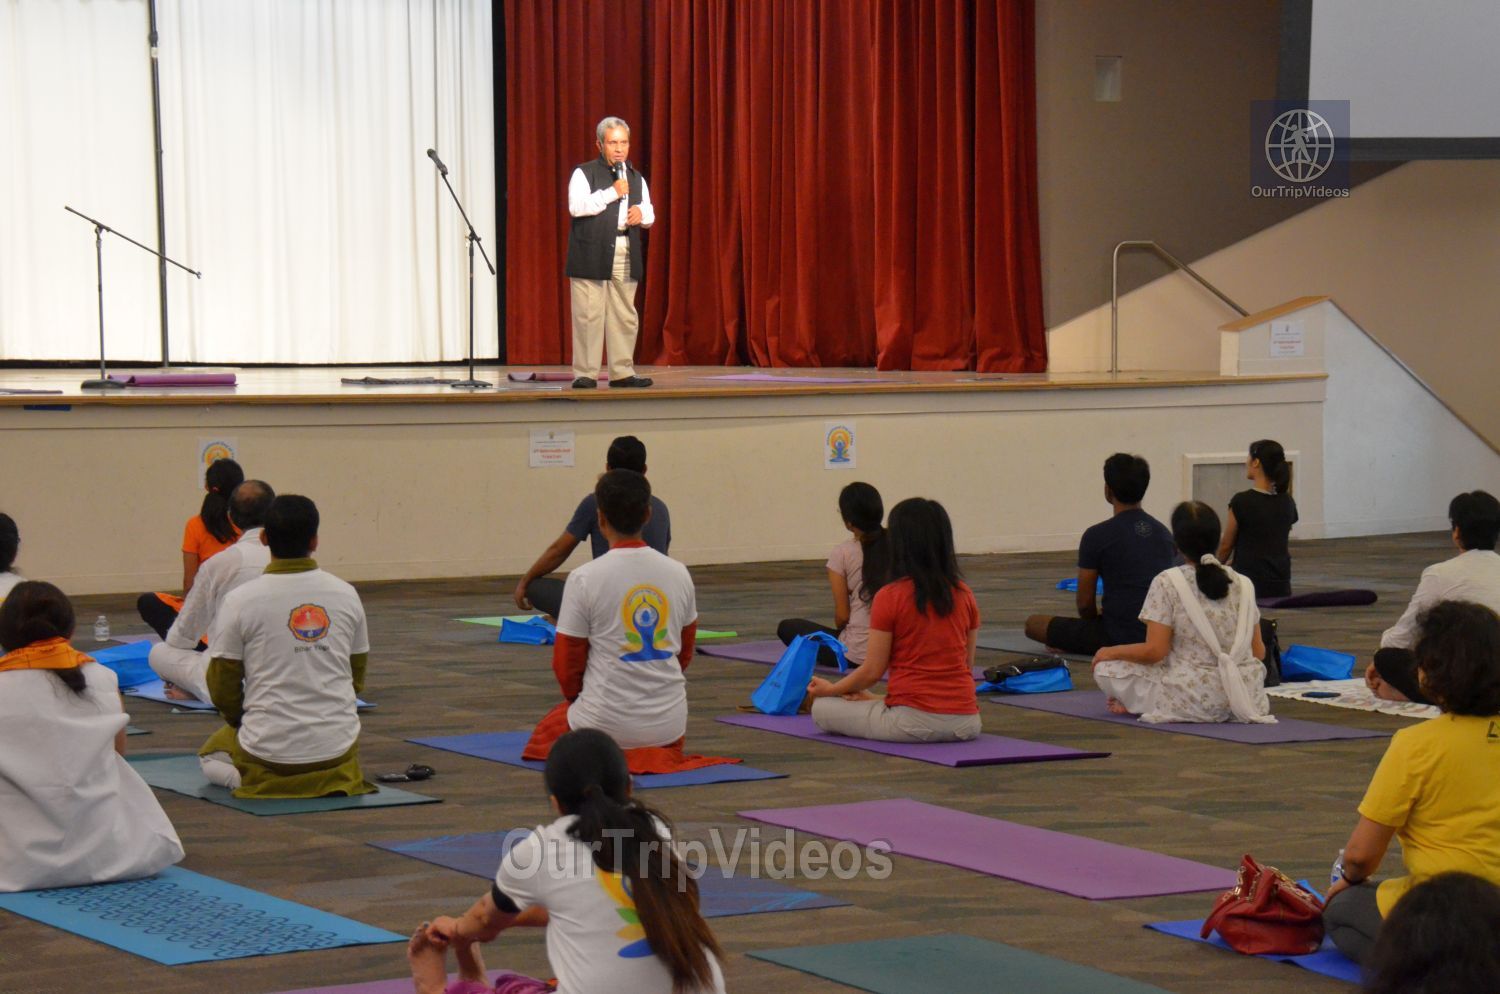 International Yoga Day at ICC, Milpitas, CA, USA - Picture 8 of 25